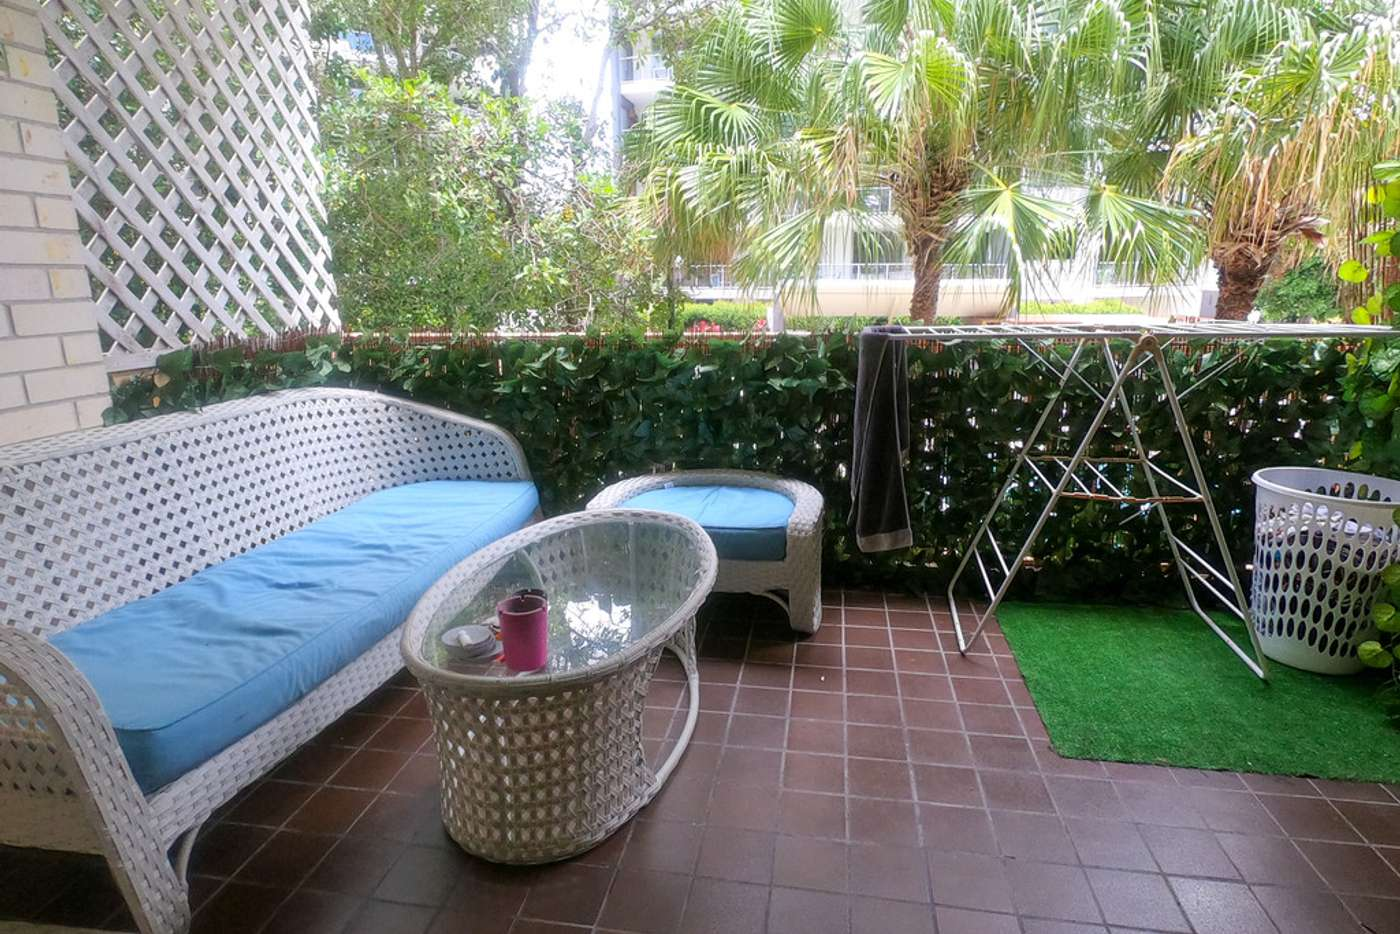 Main view of Homely unit listing, 4/26 Palm Avenue, Surfers Paradise QLD 4217